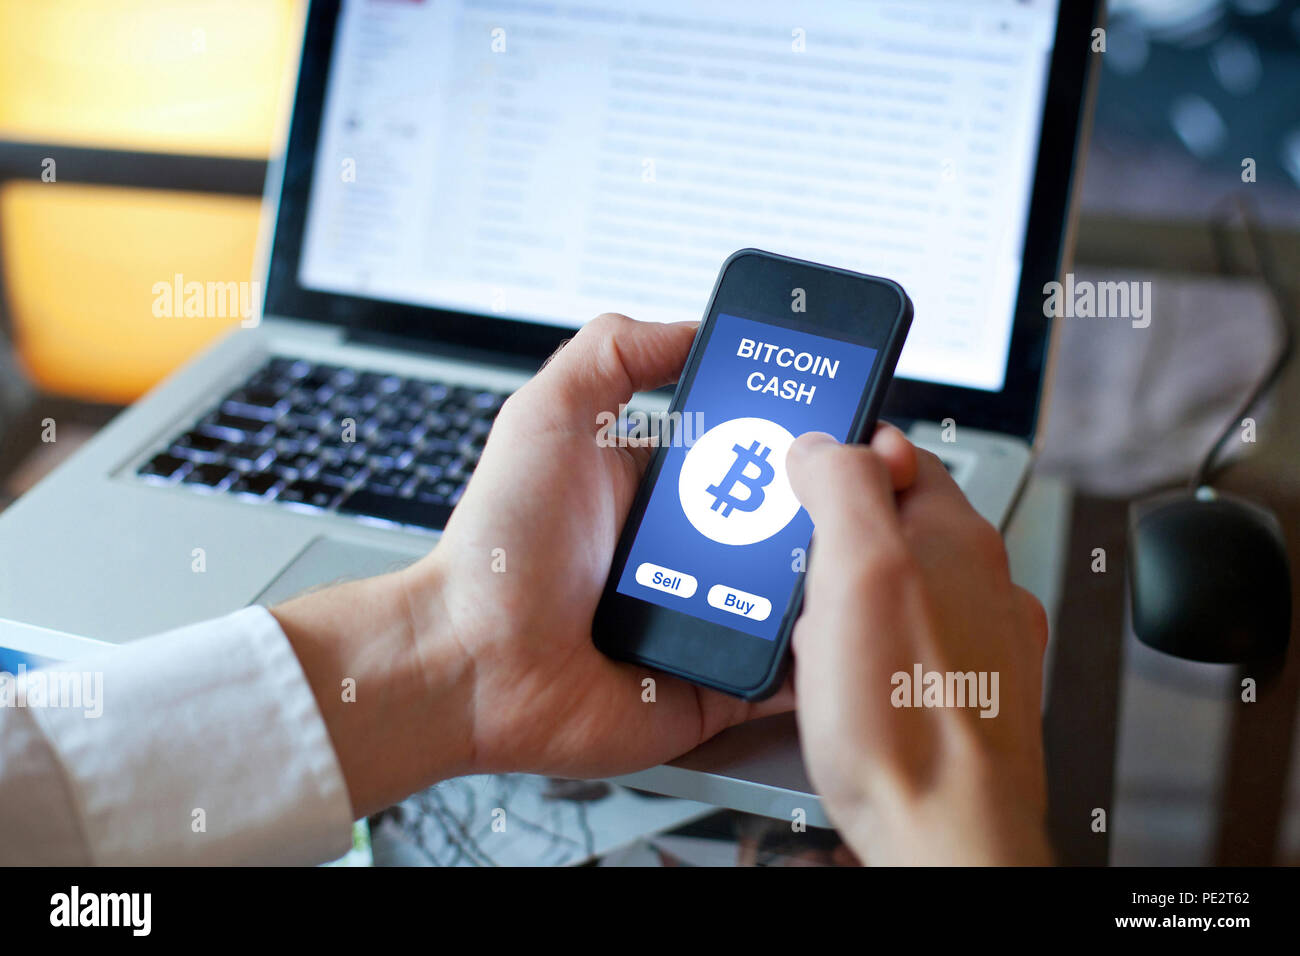 bitcoin cash coin crypto currency - Stock Image